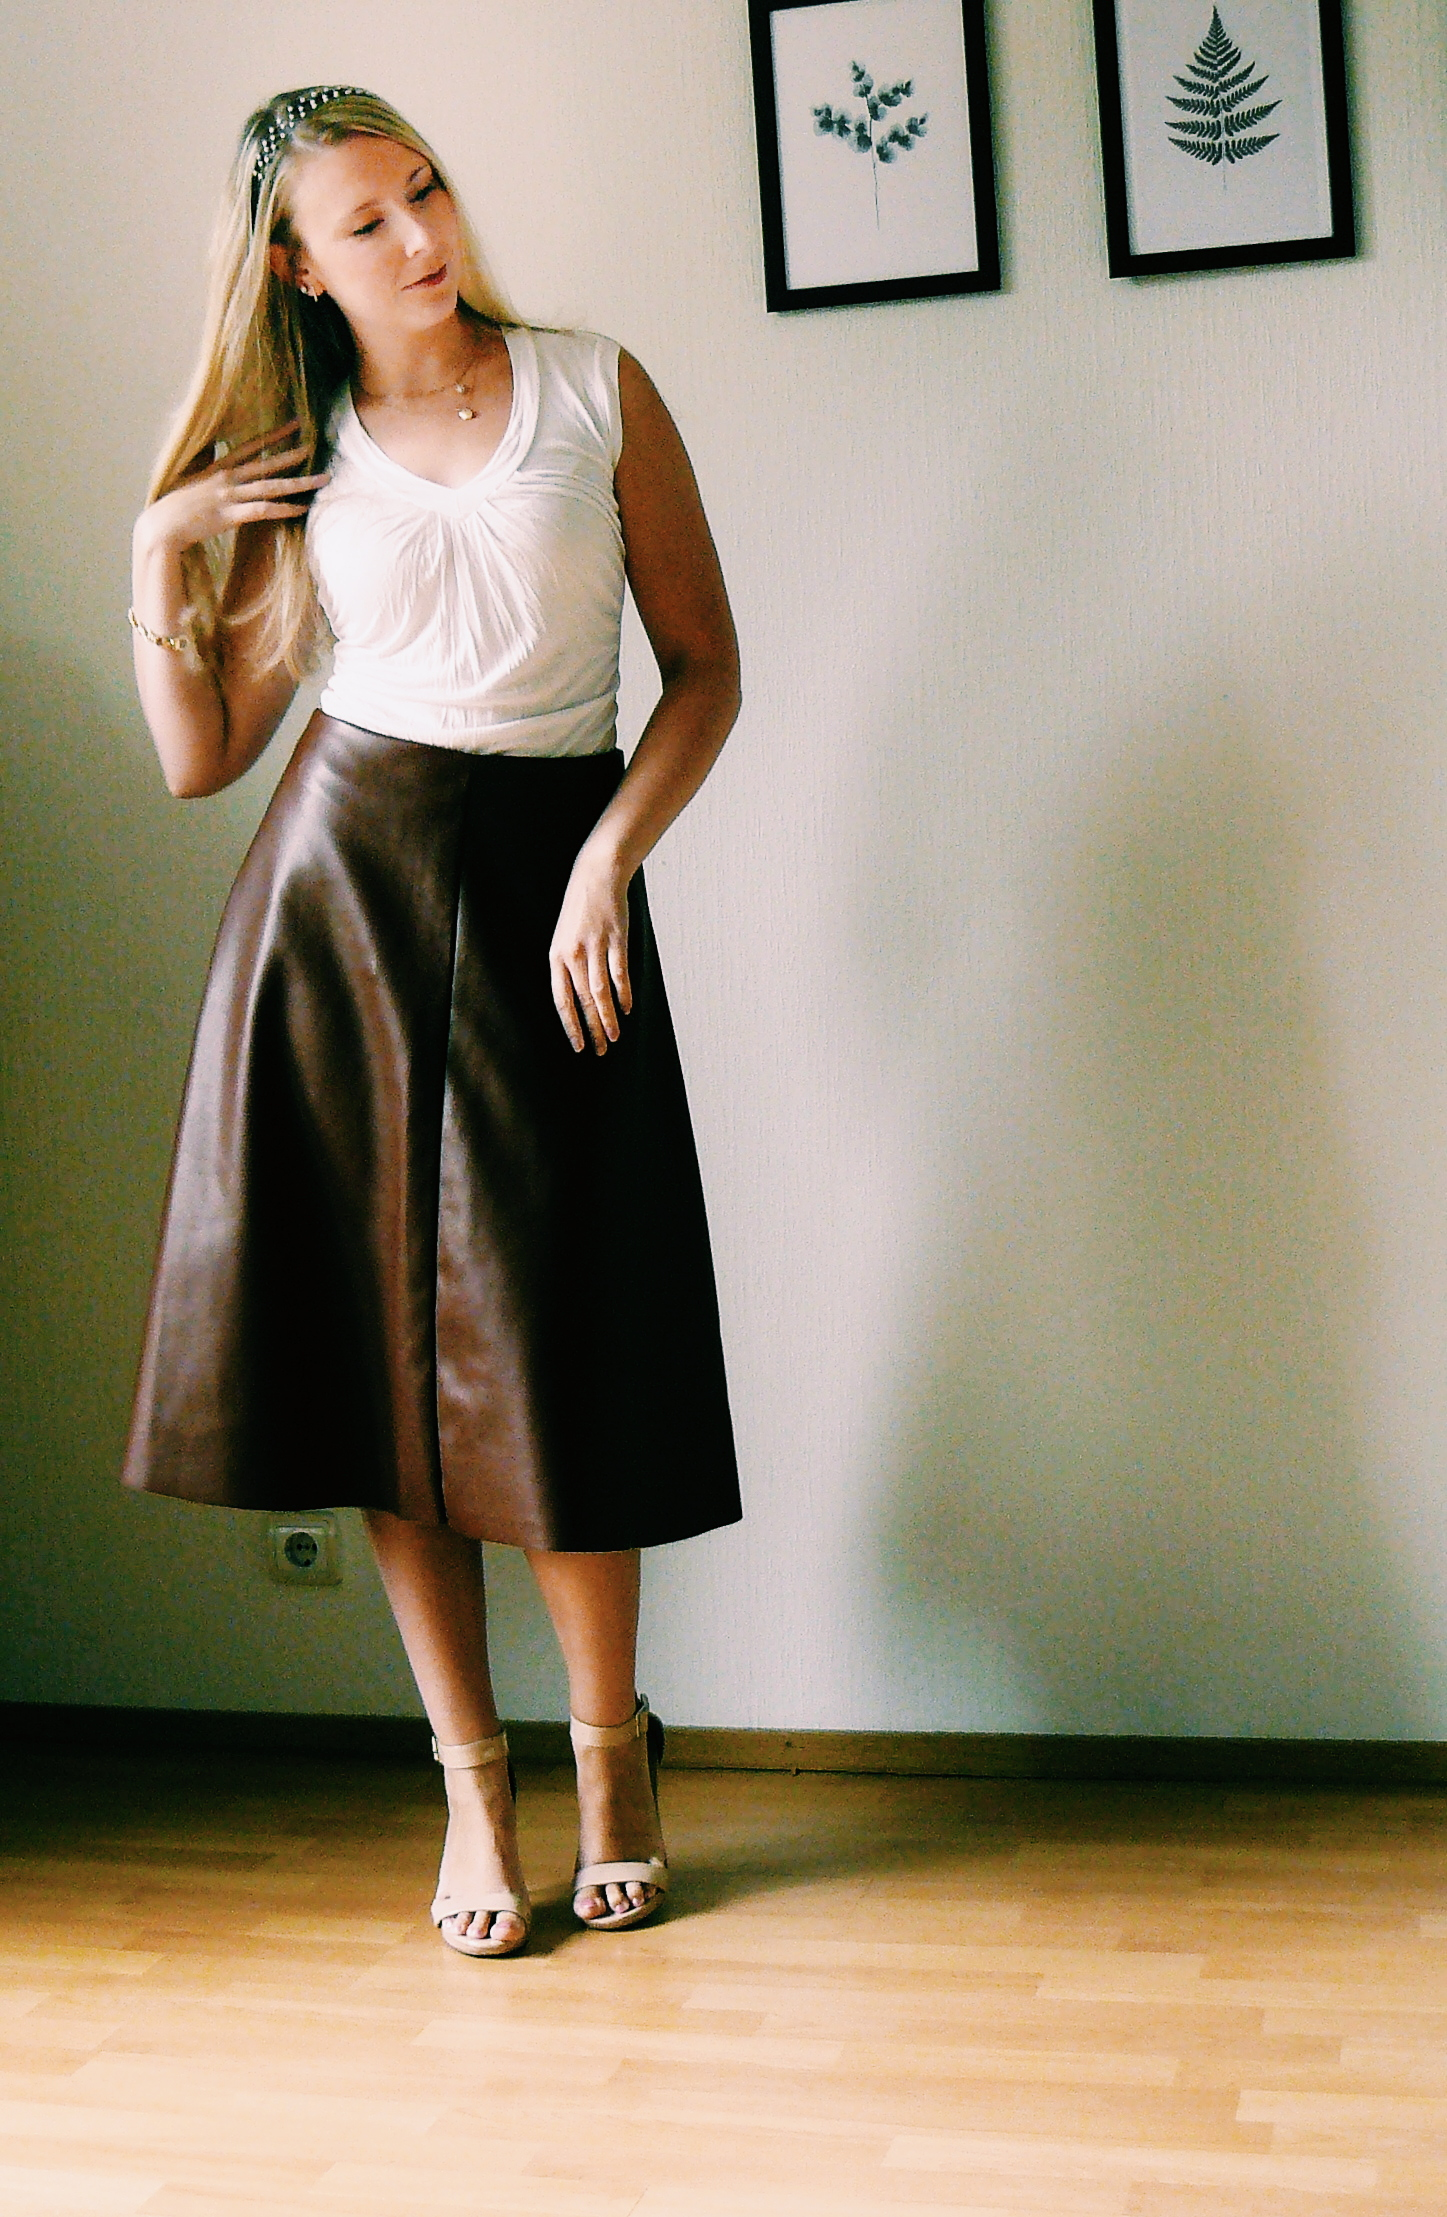 Outlandish blog lifestyle happiness outfit what helps me to dare